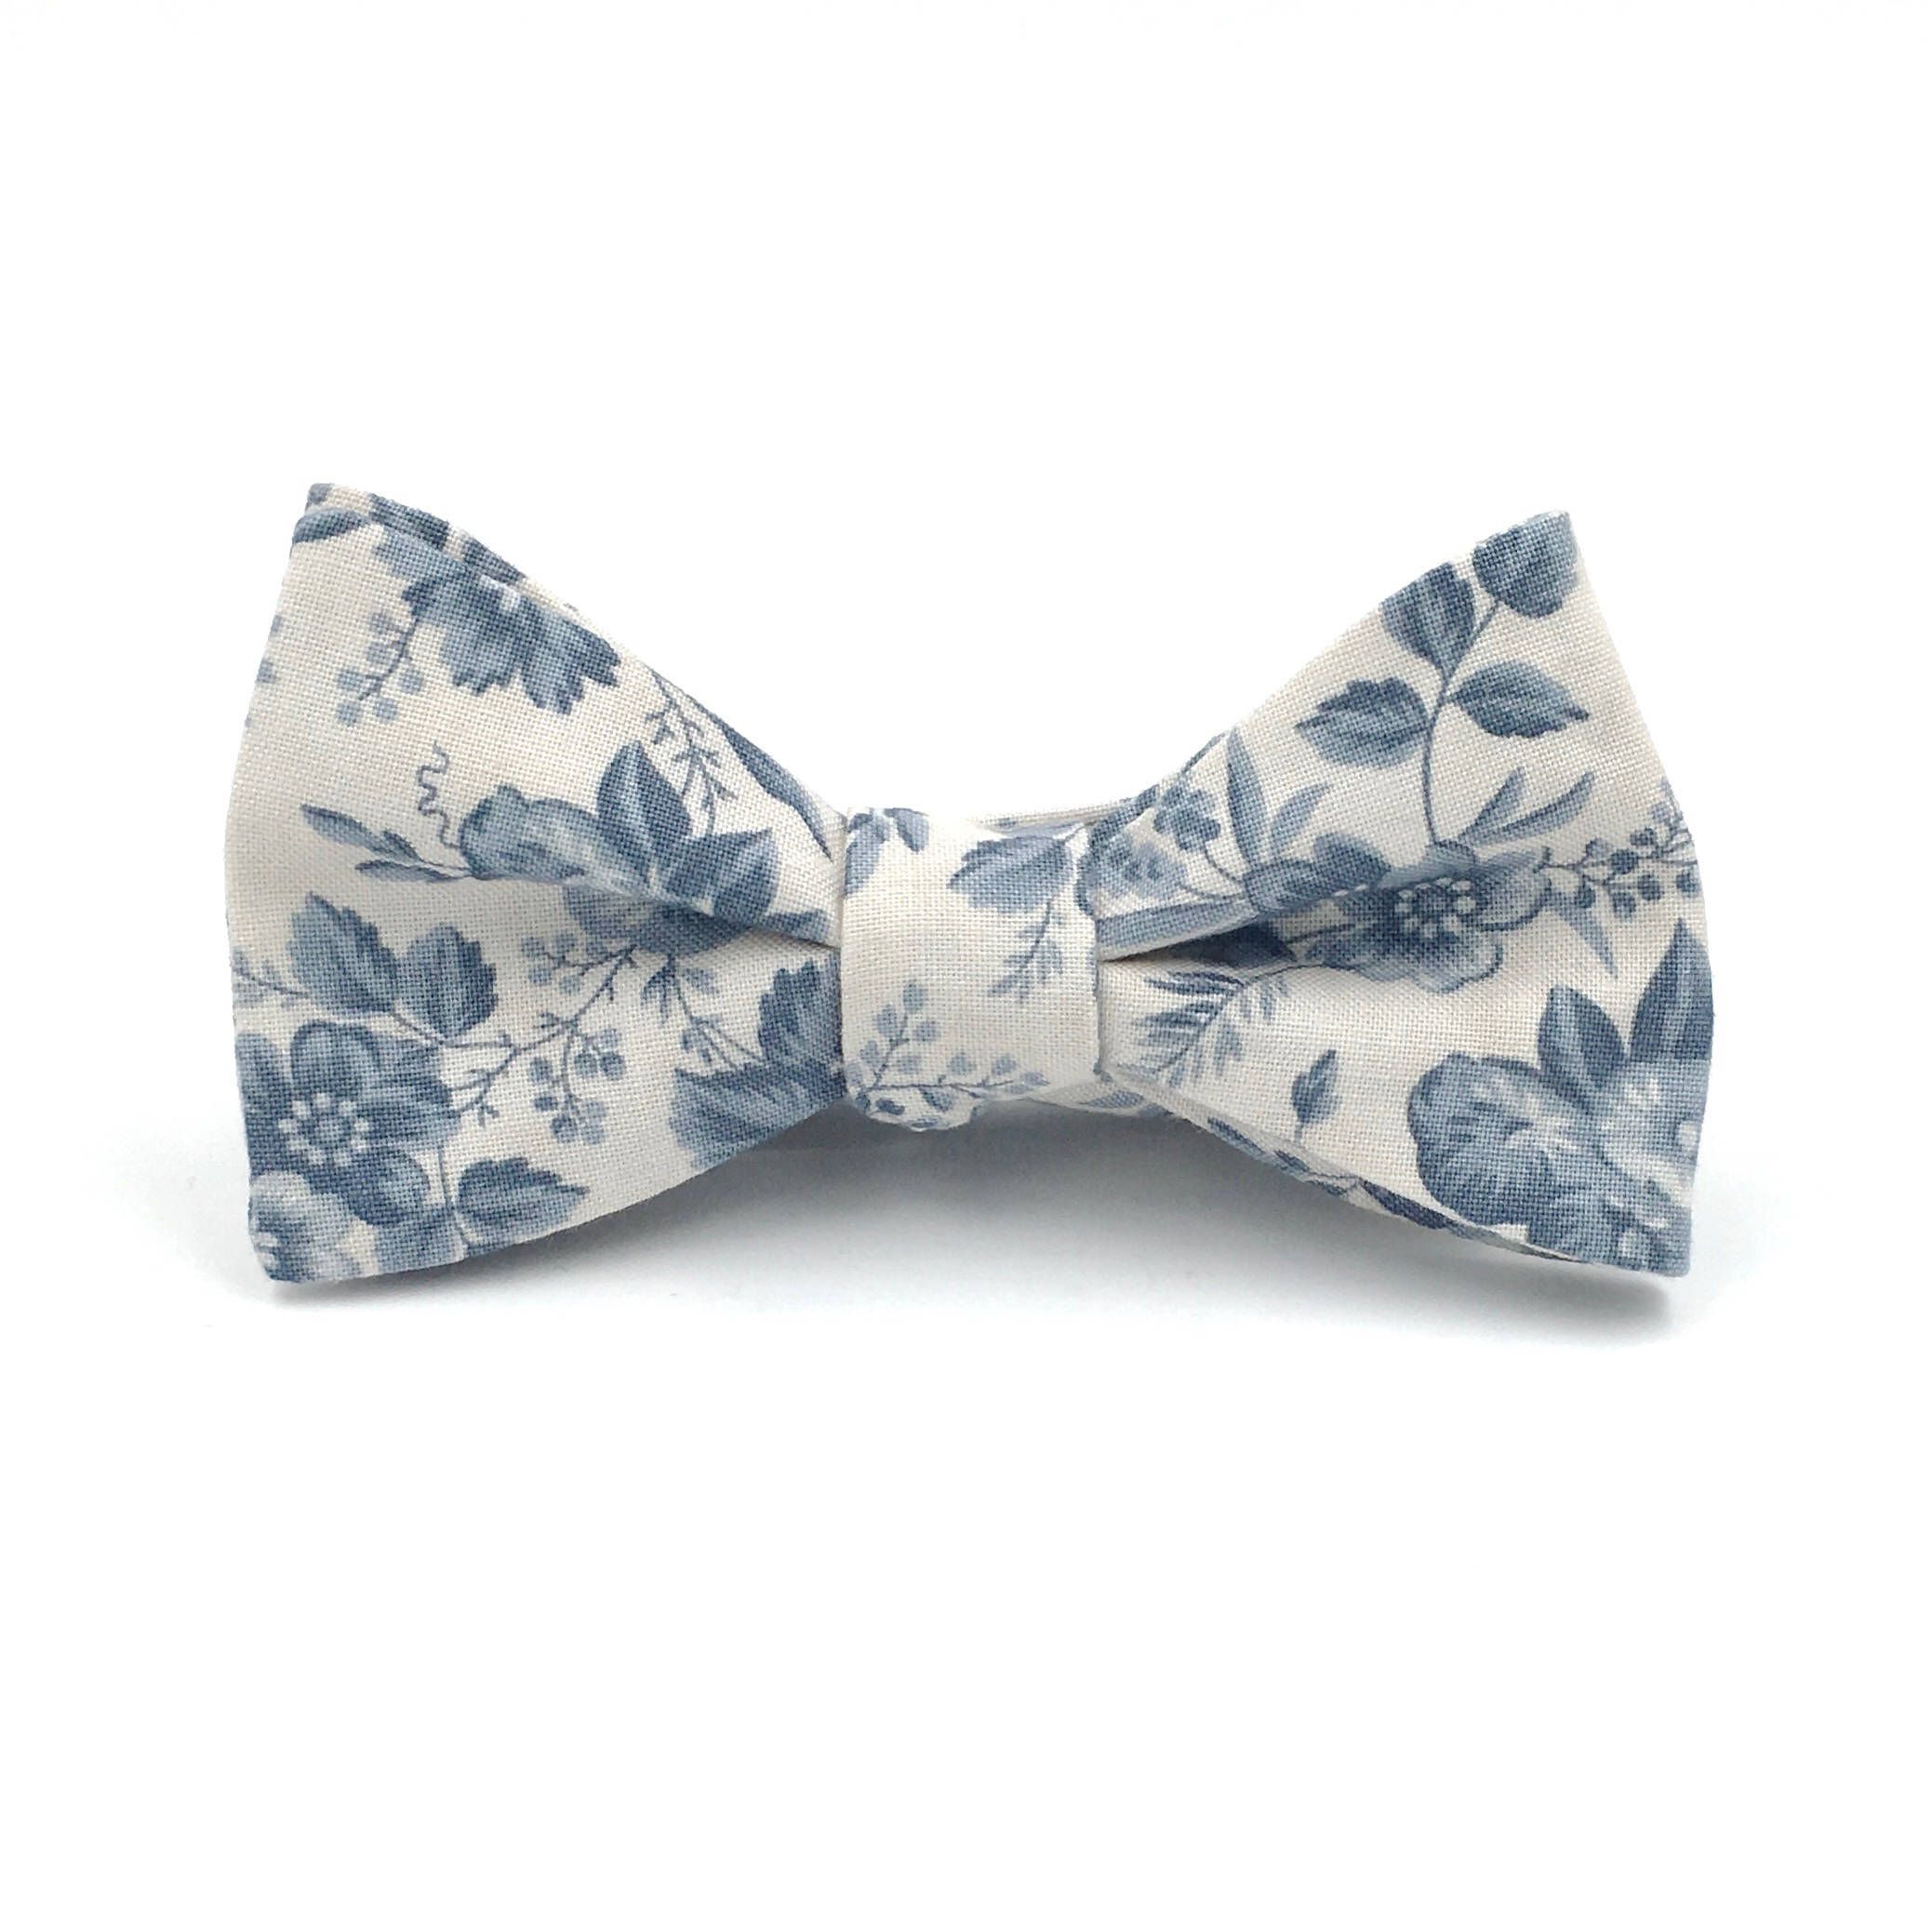 Excited To Share The Latest Addition To My Etsy Shop Dusty Blue Bow Tie Mens Light Blue Floral Tie Floral Bow T Light Blue Tie Bow Tie Wedding Blue Bow Tie